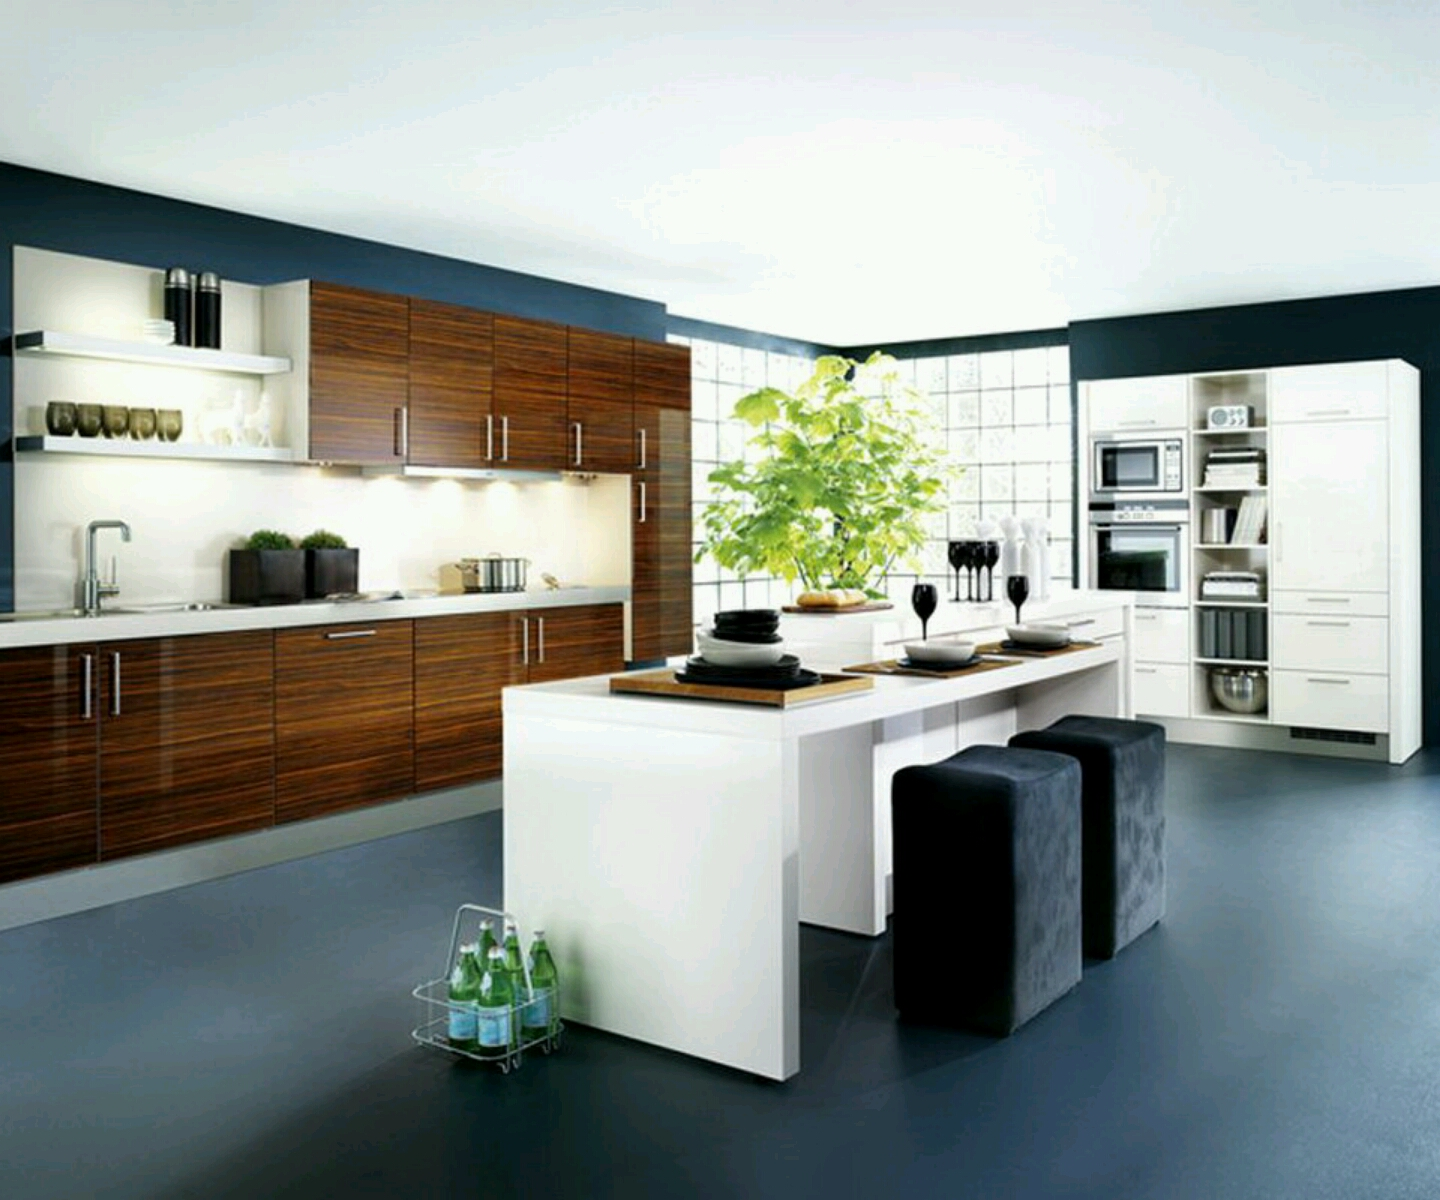 New home designs latest kitchen cabinets designs modern for Contemporary style kitchen cabinets